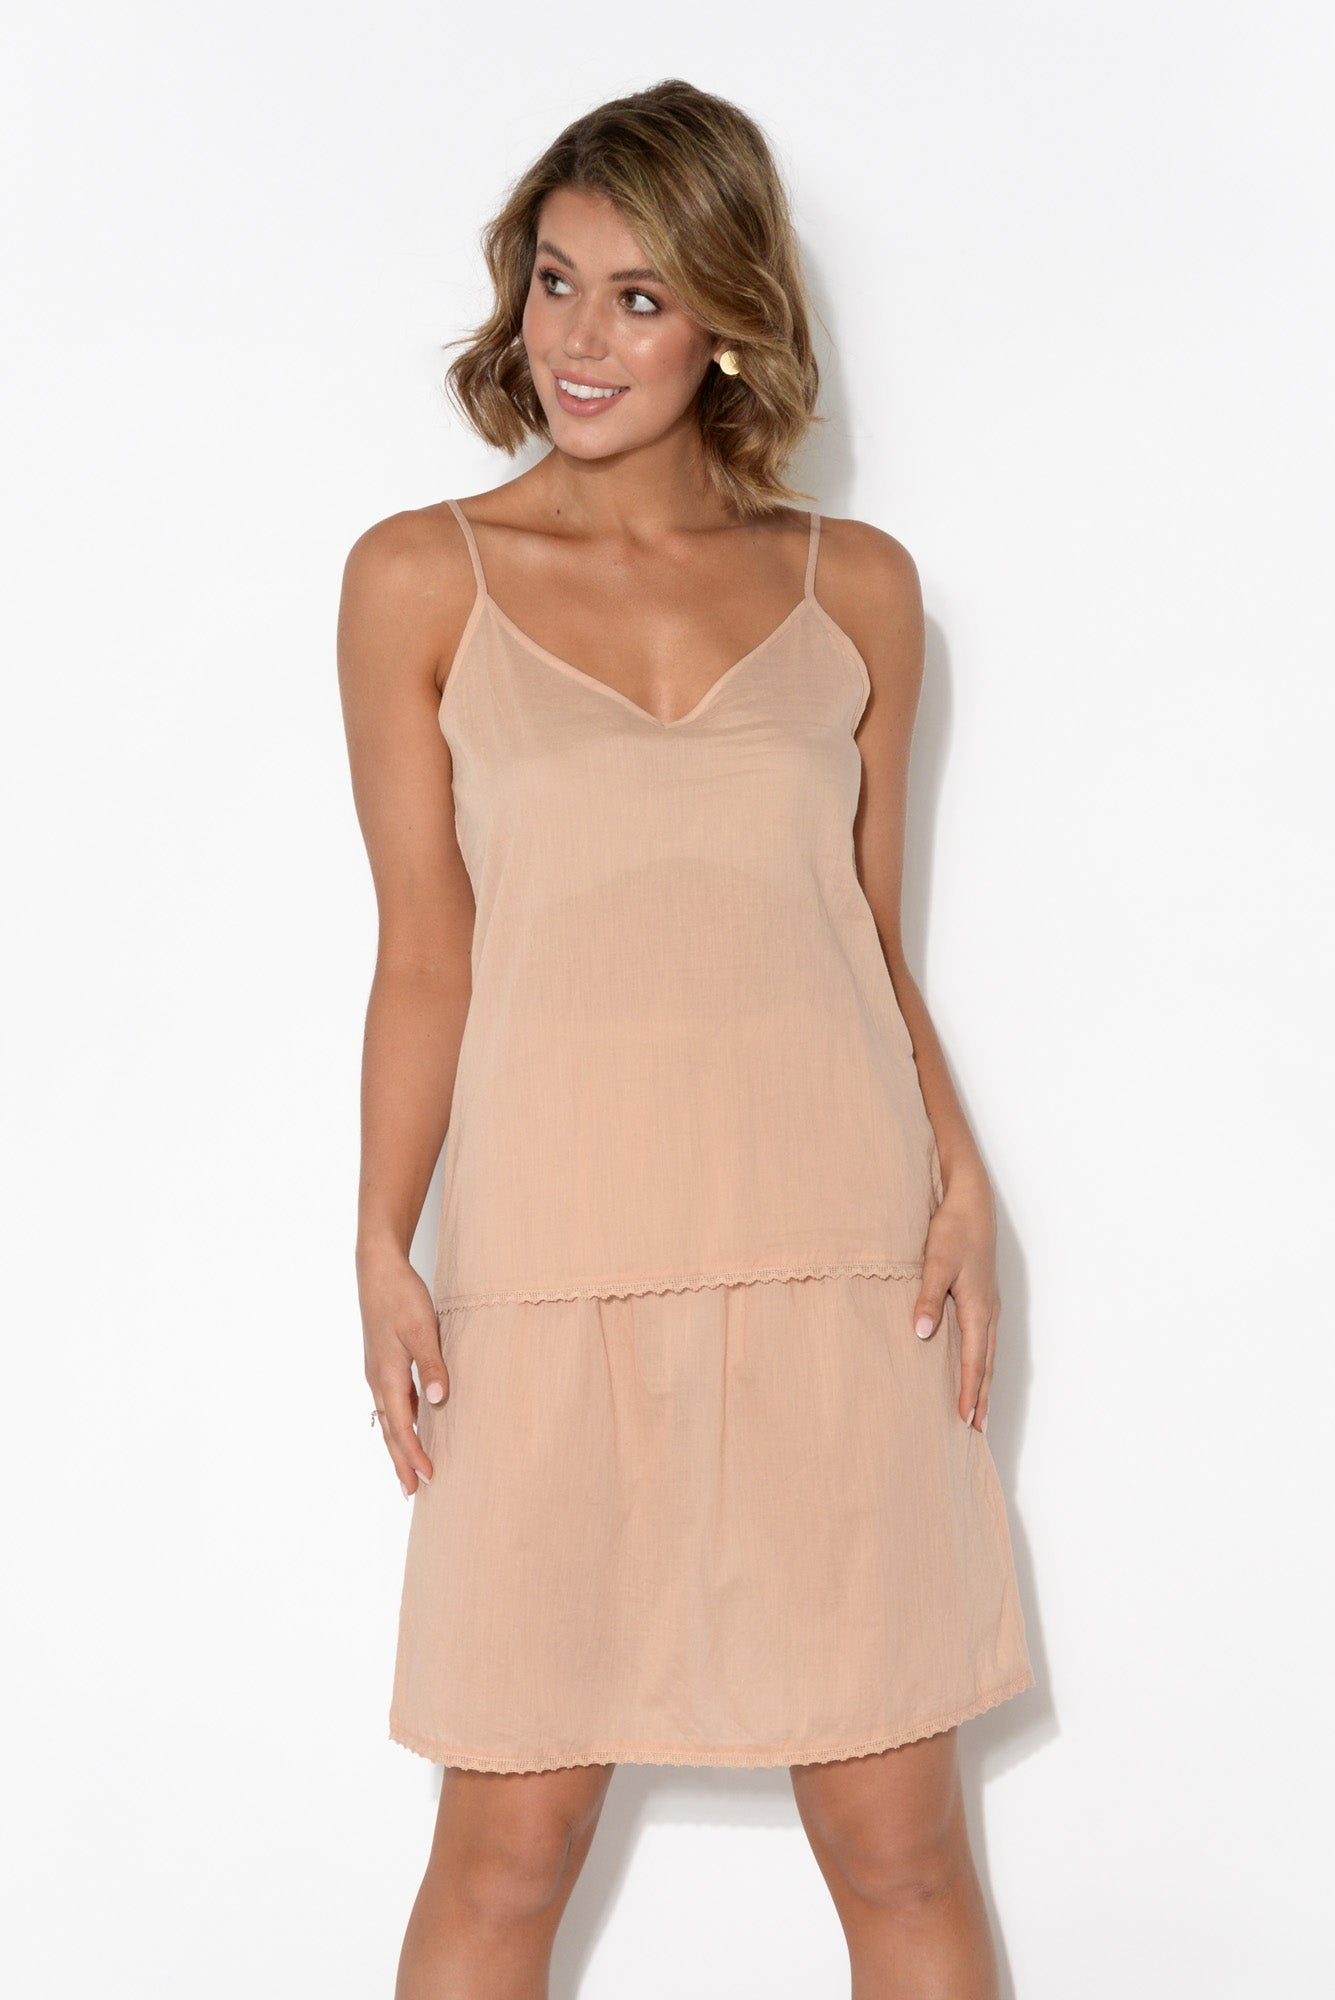 Nude Organic Cotton Reversible Cami